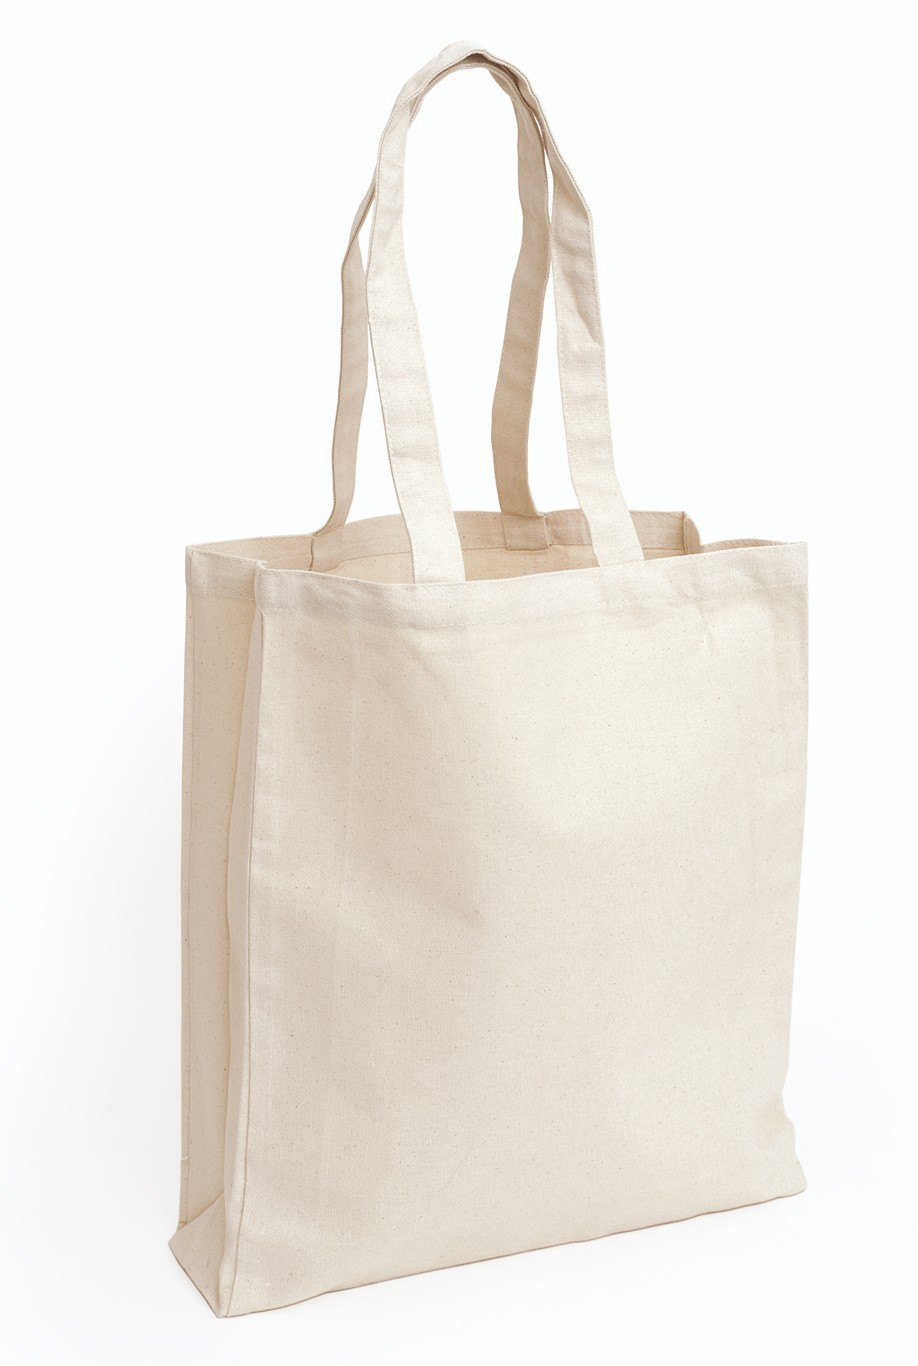 Factory Direct Sales Cotton Bag,Plain White Cotton Canvas Tote Bag ...